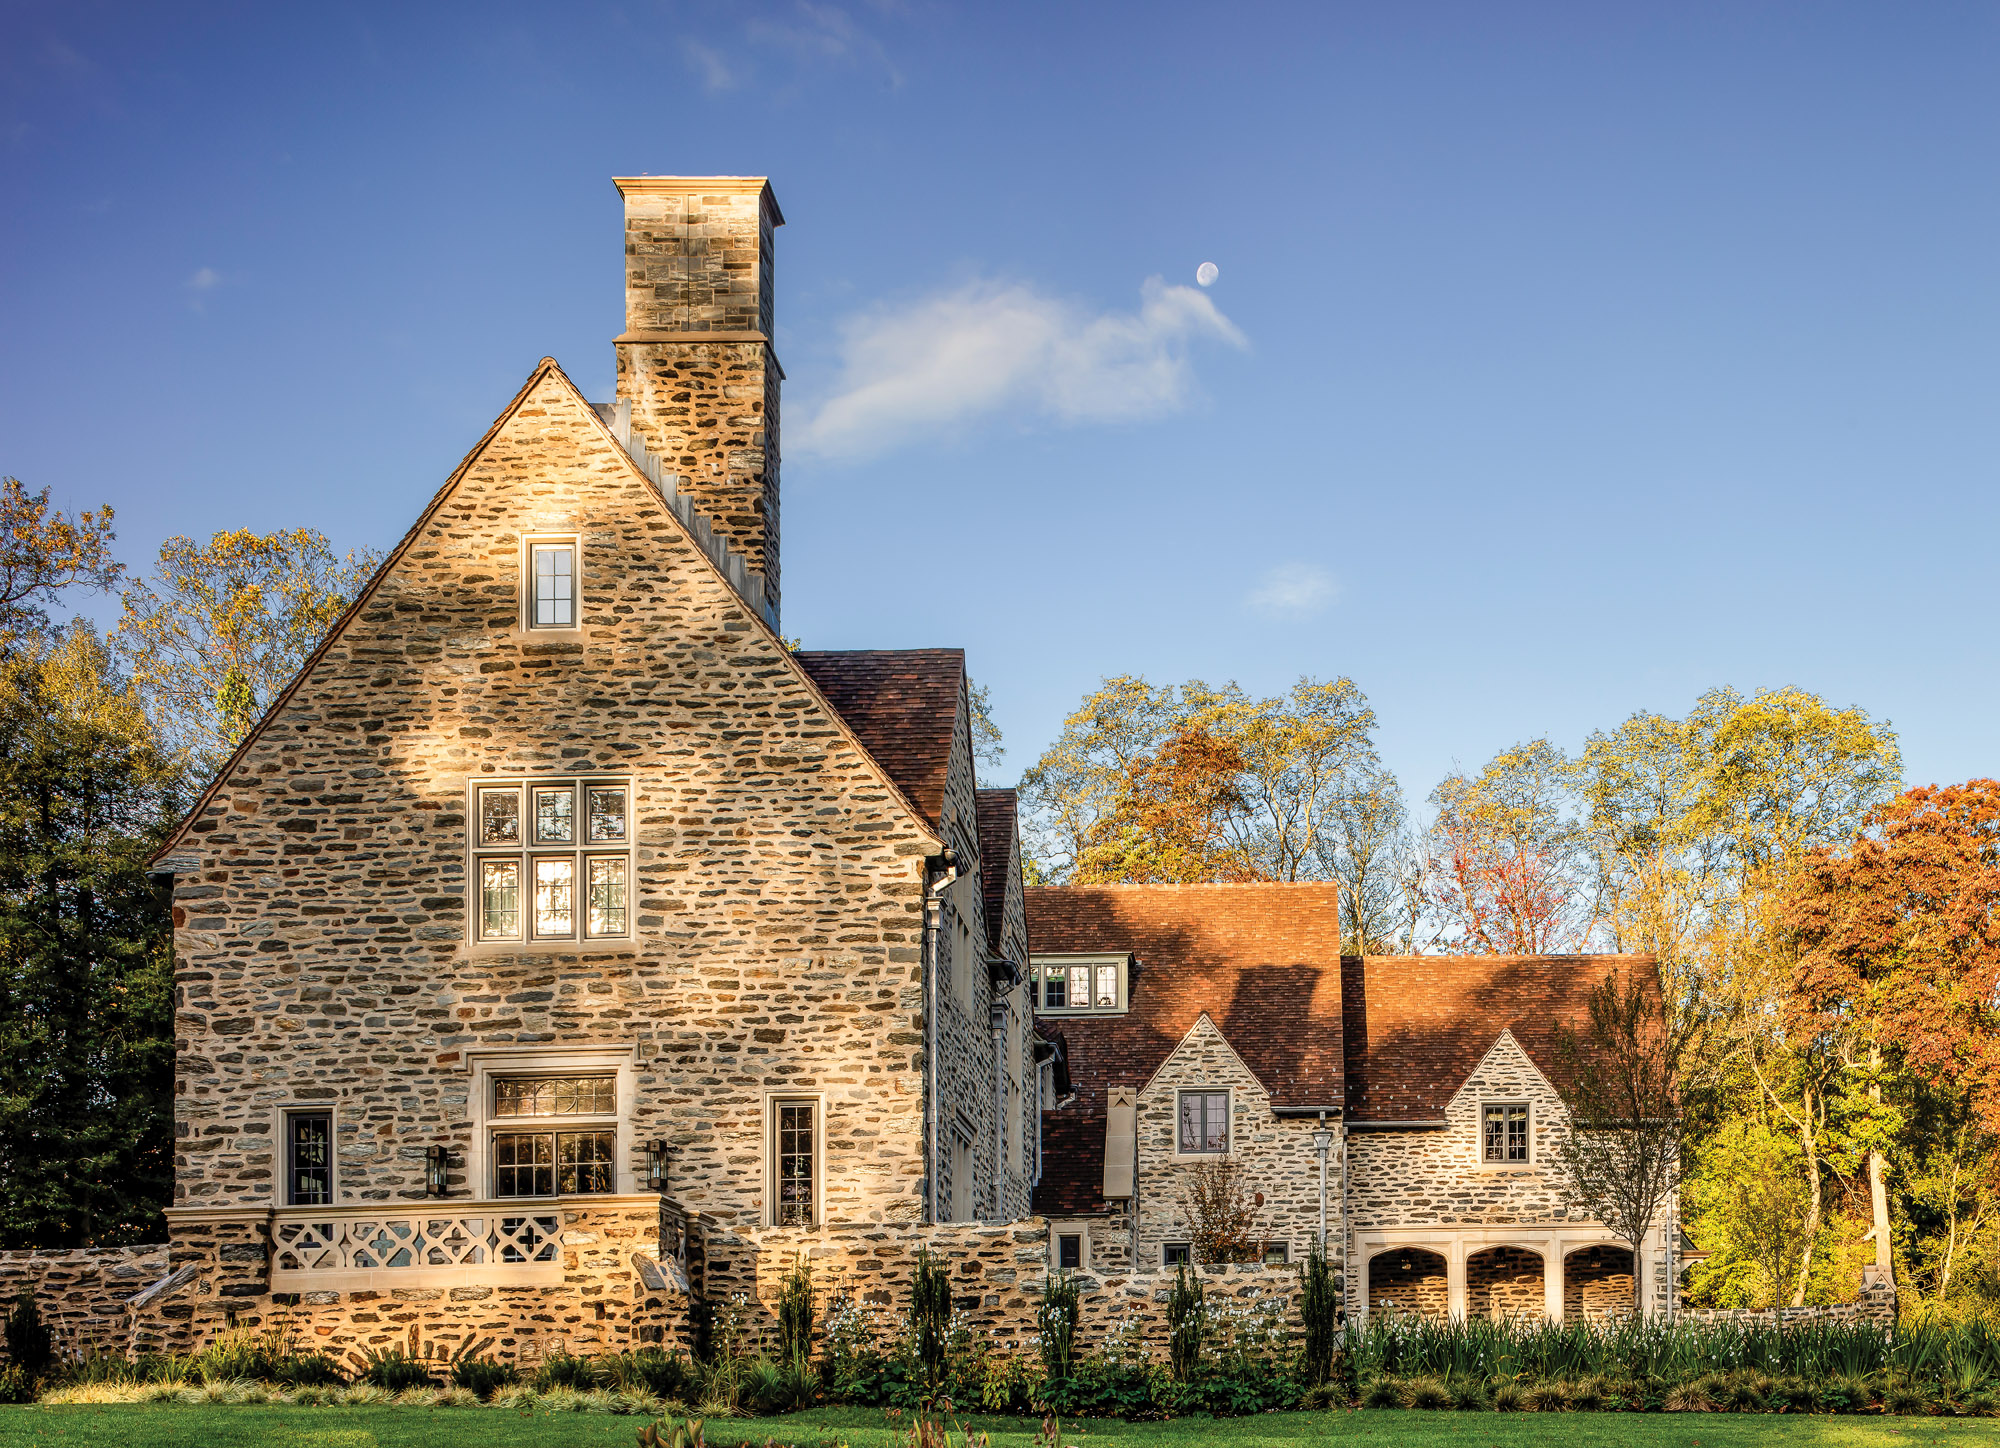 English Cotswold home